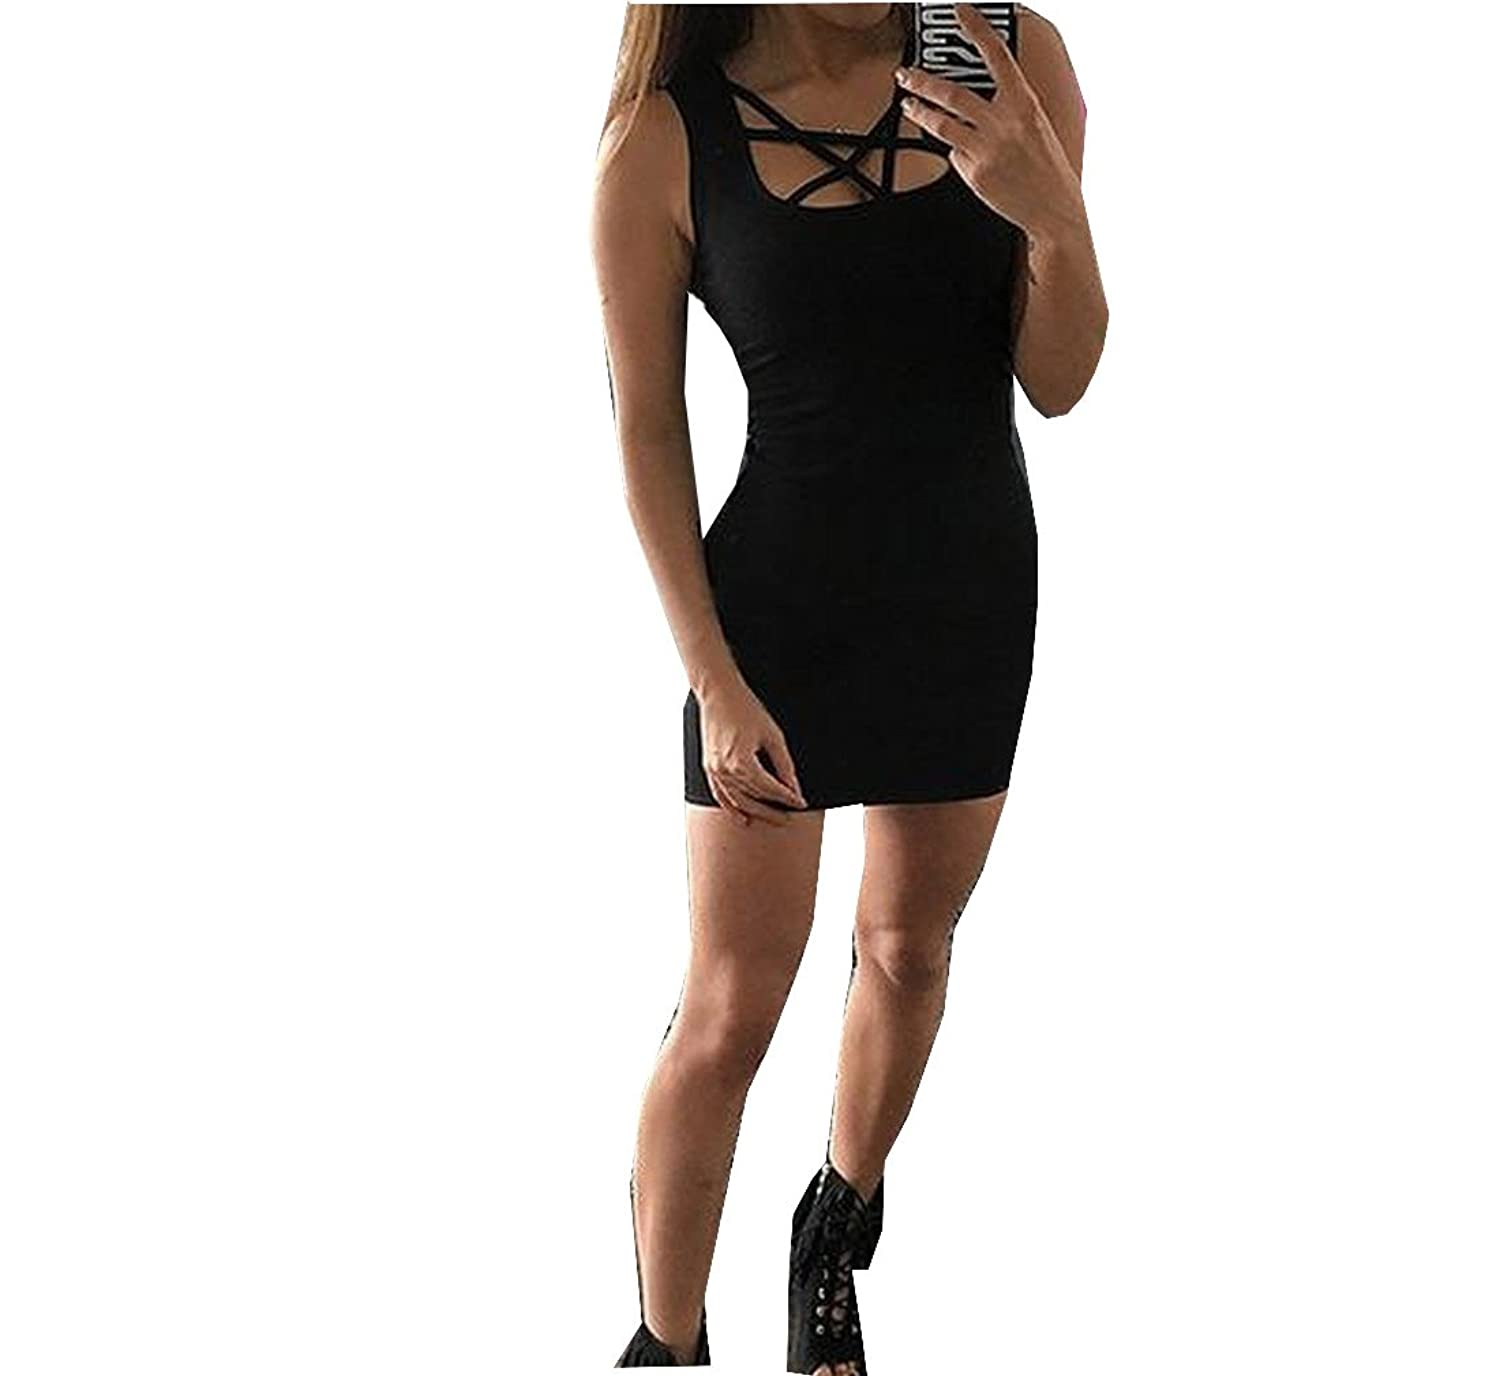 Winwinus Womens Chic Slim Fit Sleeveless Bangdage Bodycon Dress Black US XS